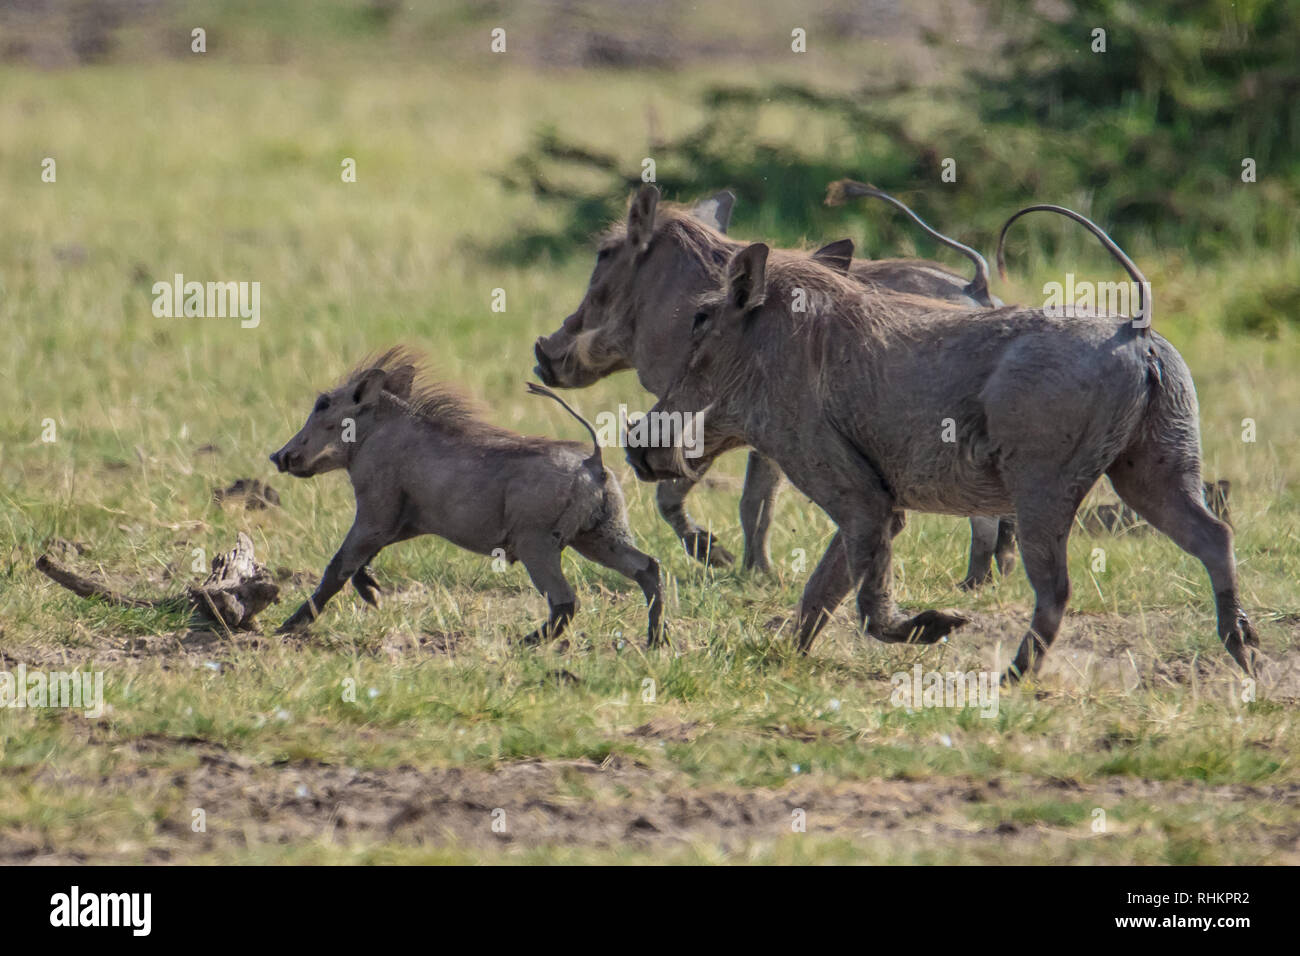 Family of warthogs - Stock Image